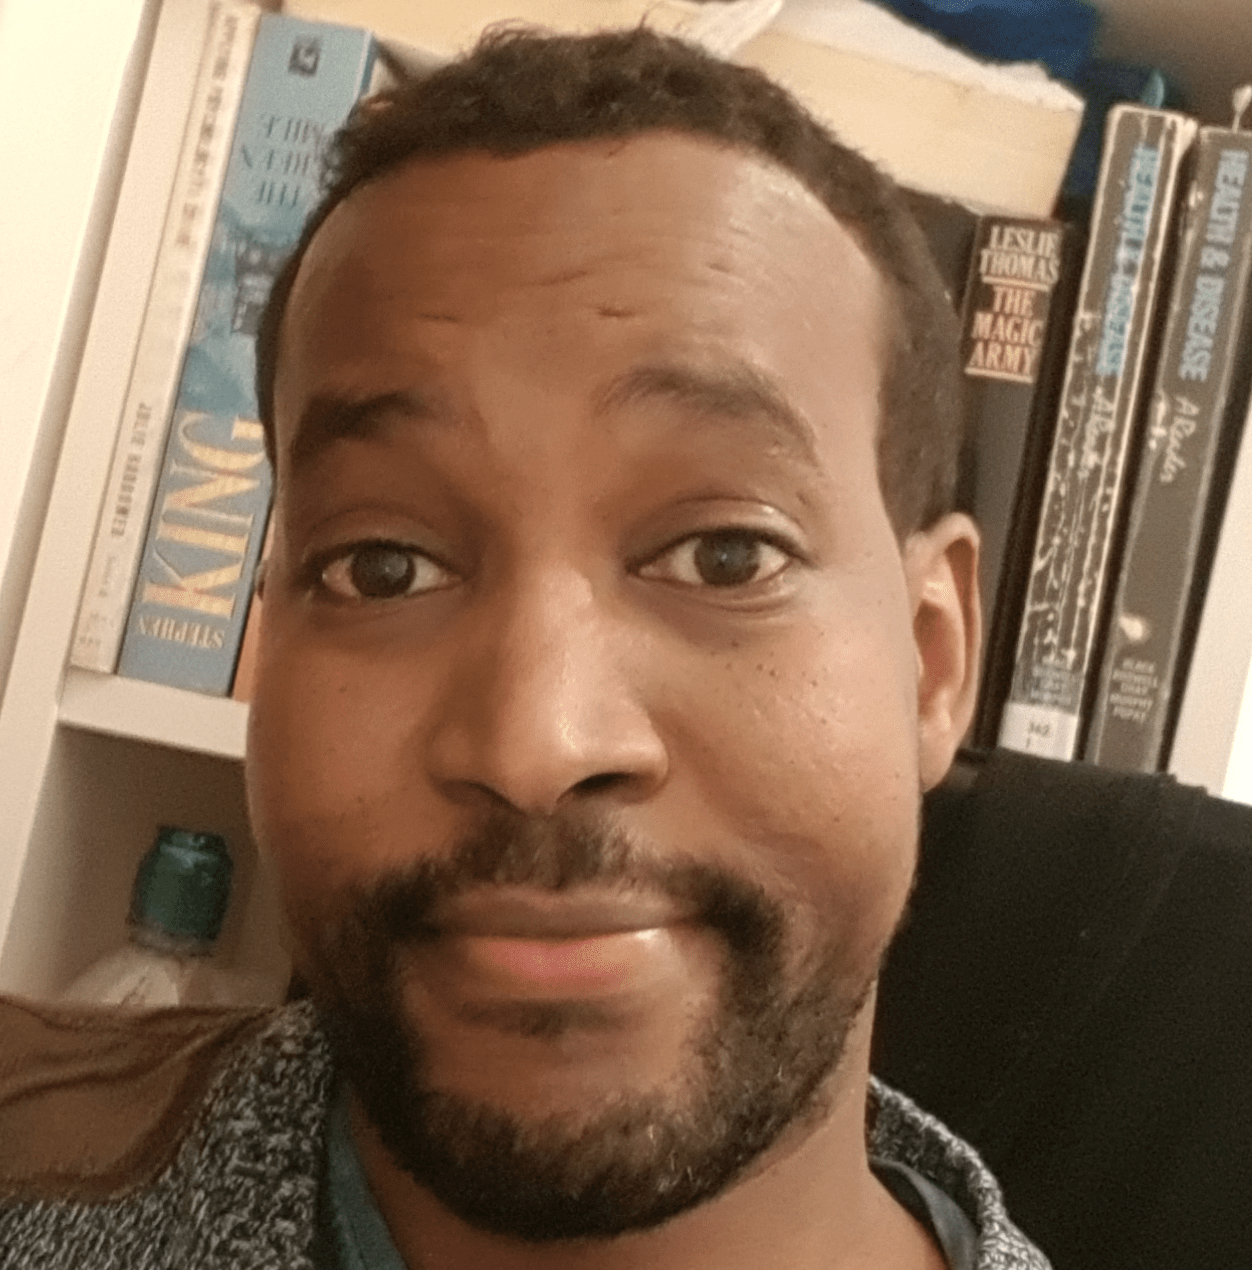 Dr Hassan Osman FHEA is a lead lecturer in research methods in the Faculty of Health & Wellbeing at the University of Bolton. Main academic interests: technology driven pedagogy, accelerated learning & education development in crisis or emergencies settings (@drhassanosman1).